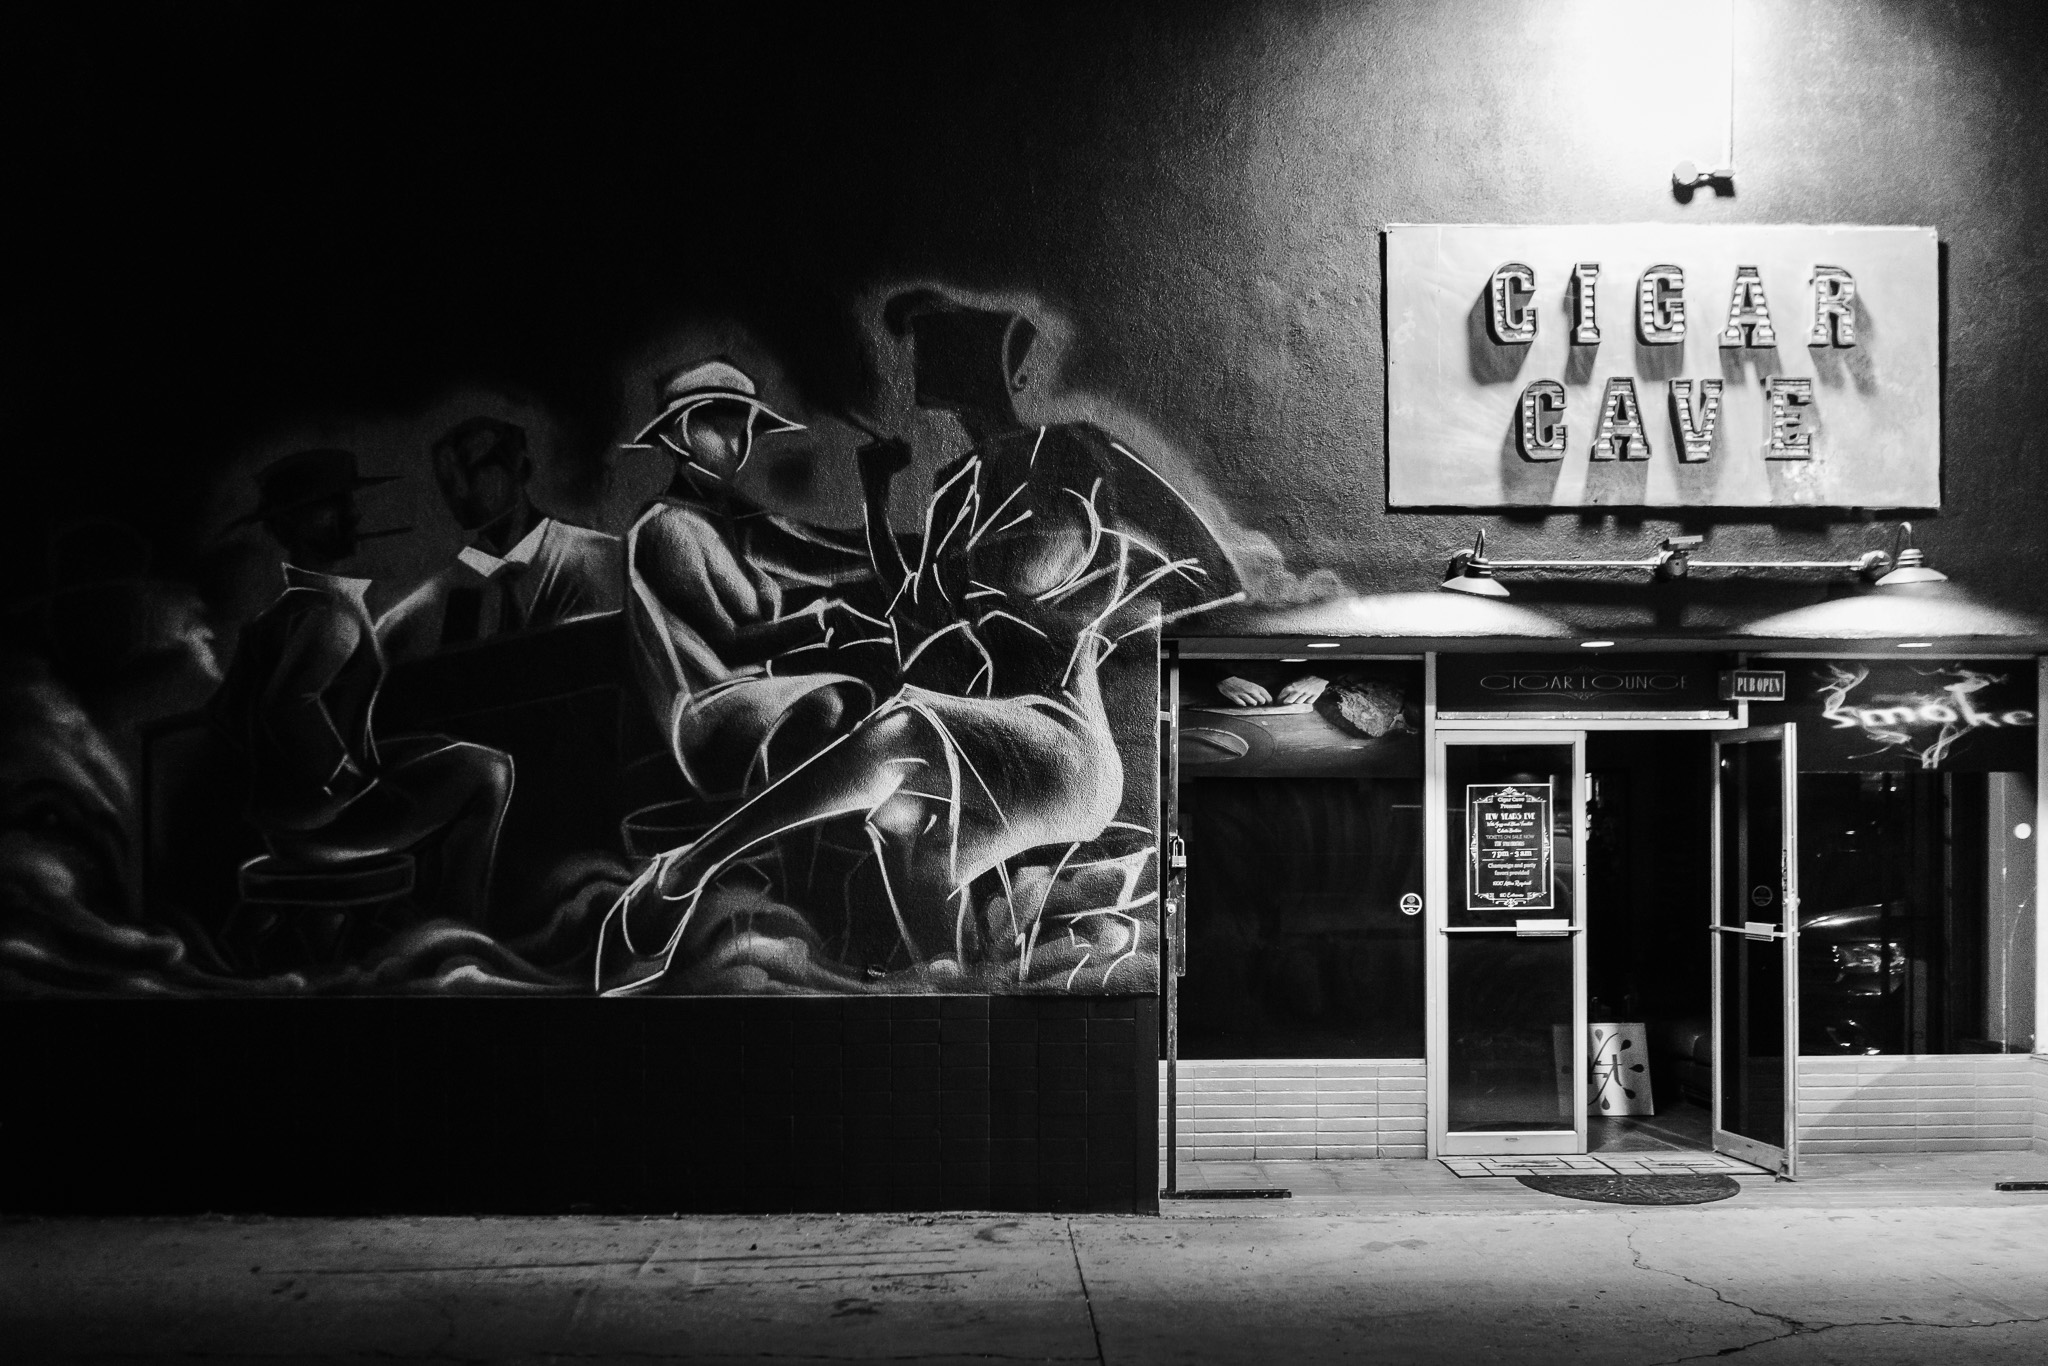 The unfinished mural outside The Cigar Cave